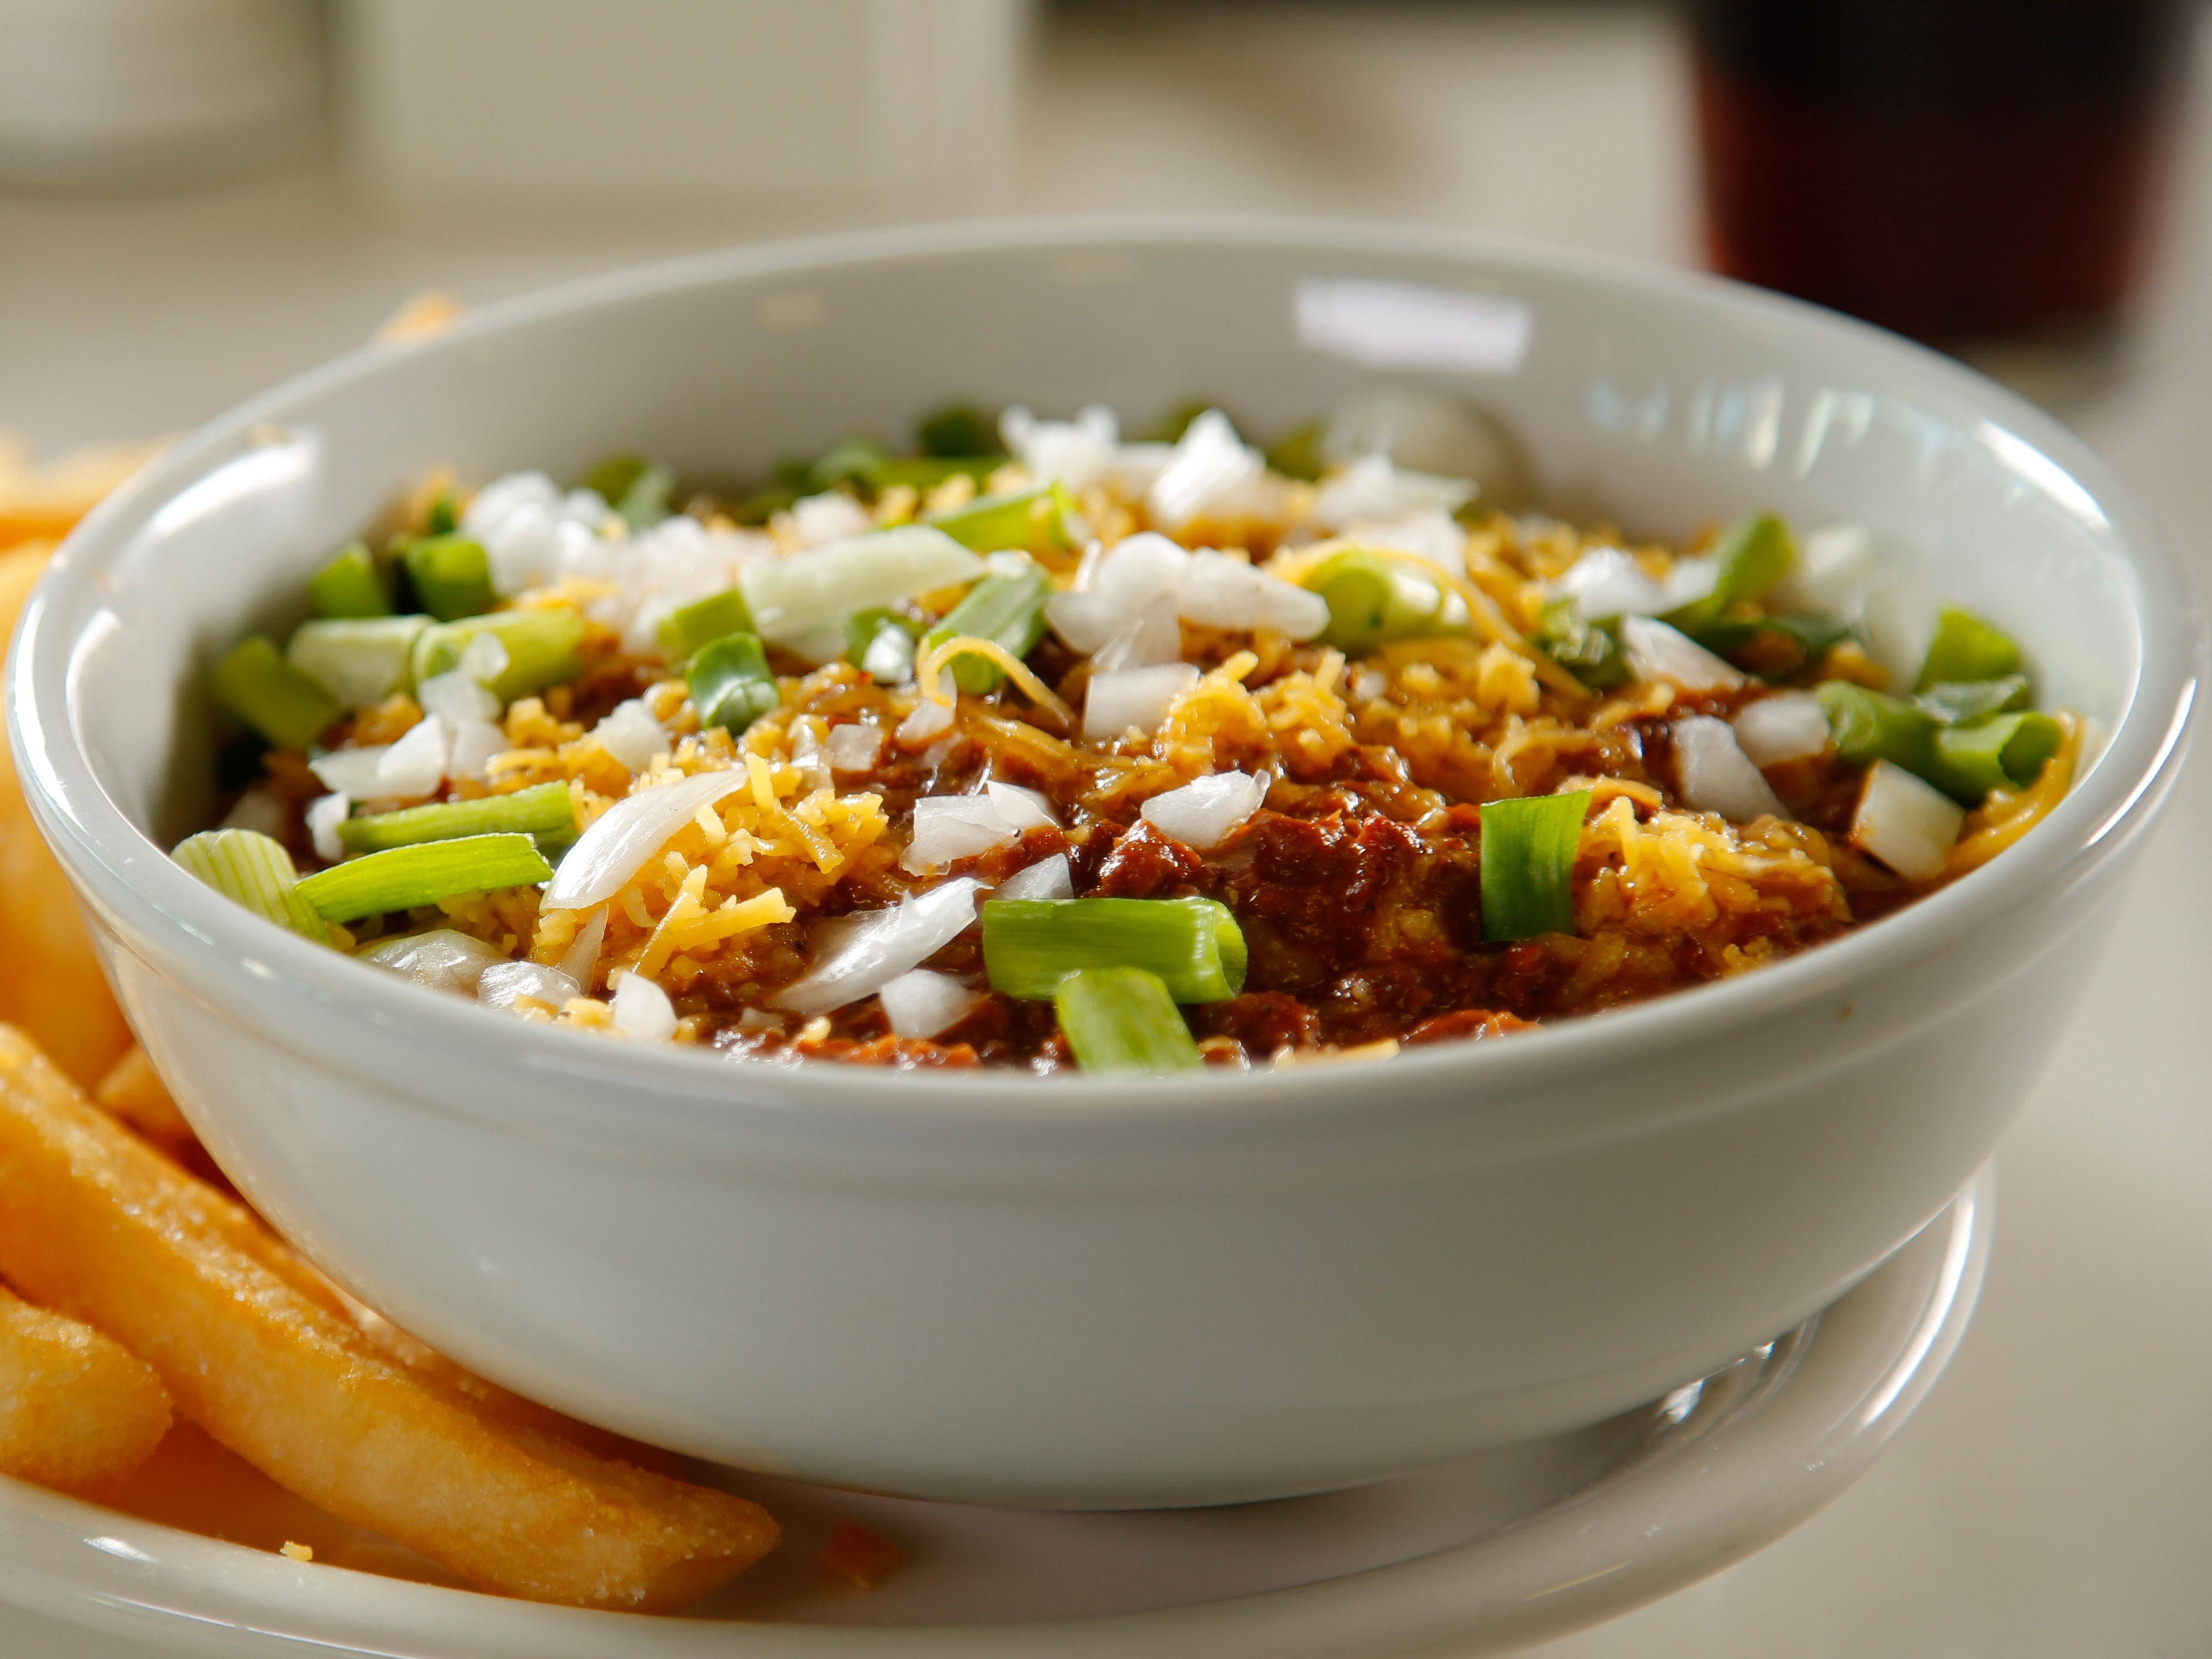 Texas chili recipe texas chili chili recipes and diners forumfinder Image collections